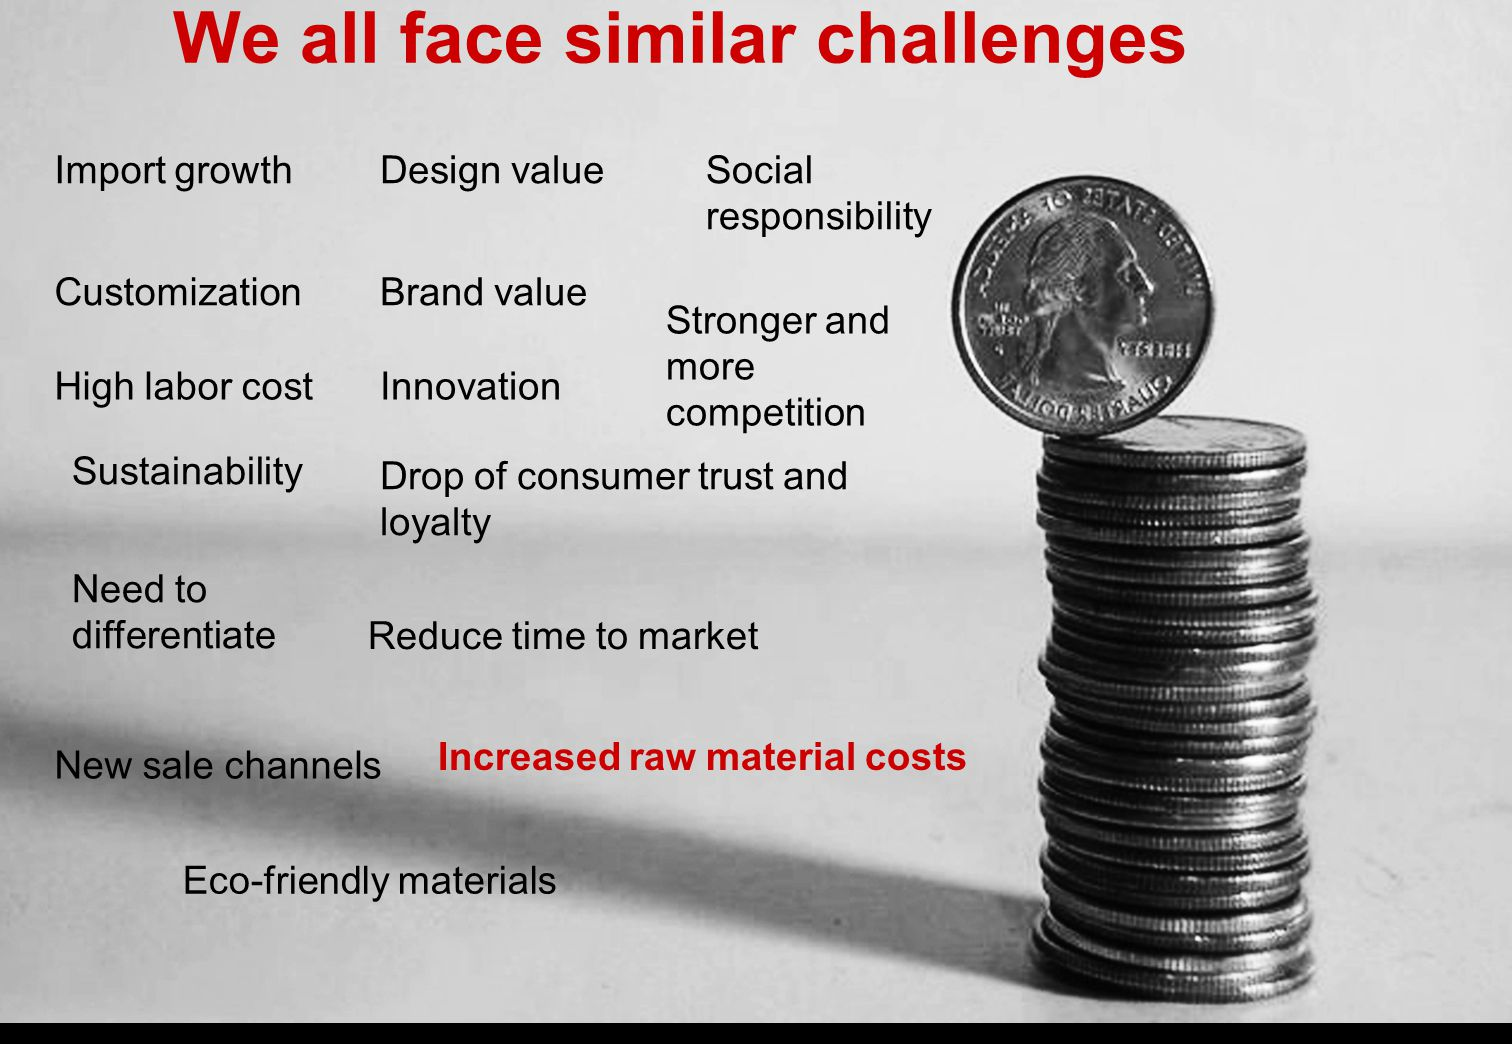 We all face similar challenges Import growth Stronger and more competition High labor cost Social responsibility Sustainability Increased raw material costs Need to differentiate Drop of consumer trust and loyalty Reduce time to market Design value Brand value New sale channels Innovation Eco-friendly materials Customization